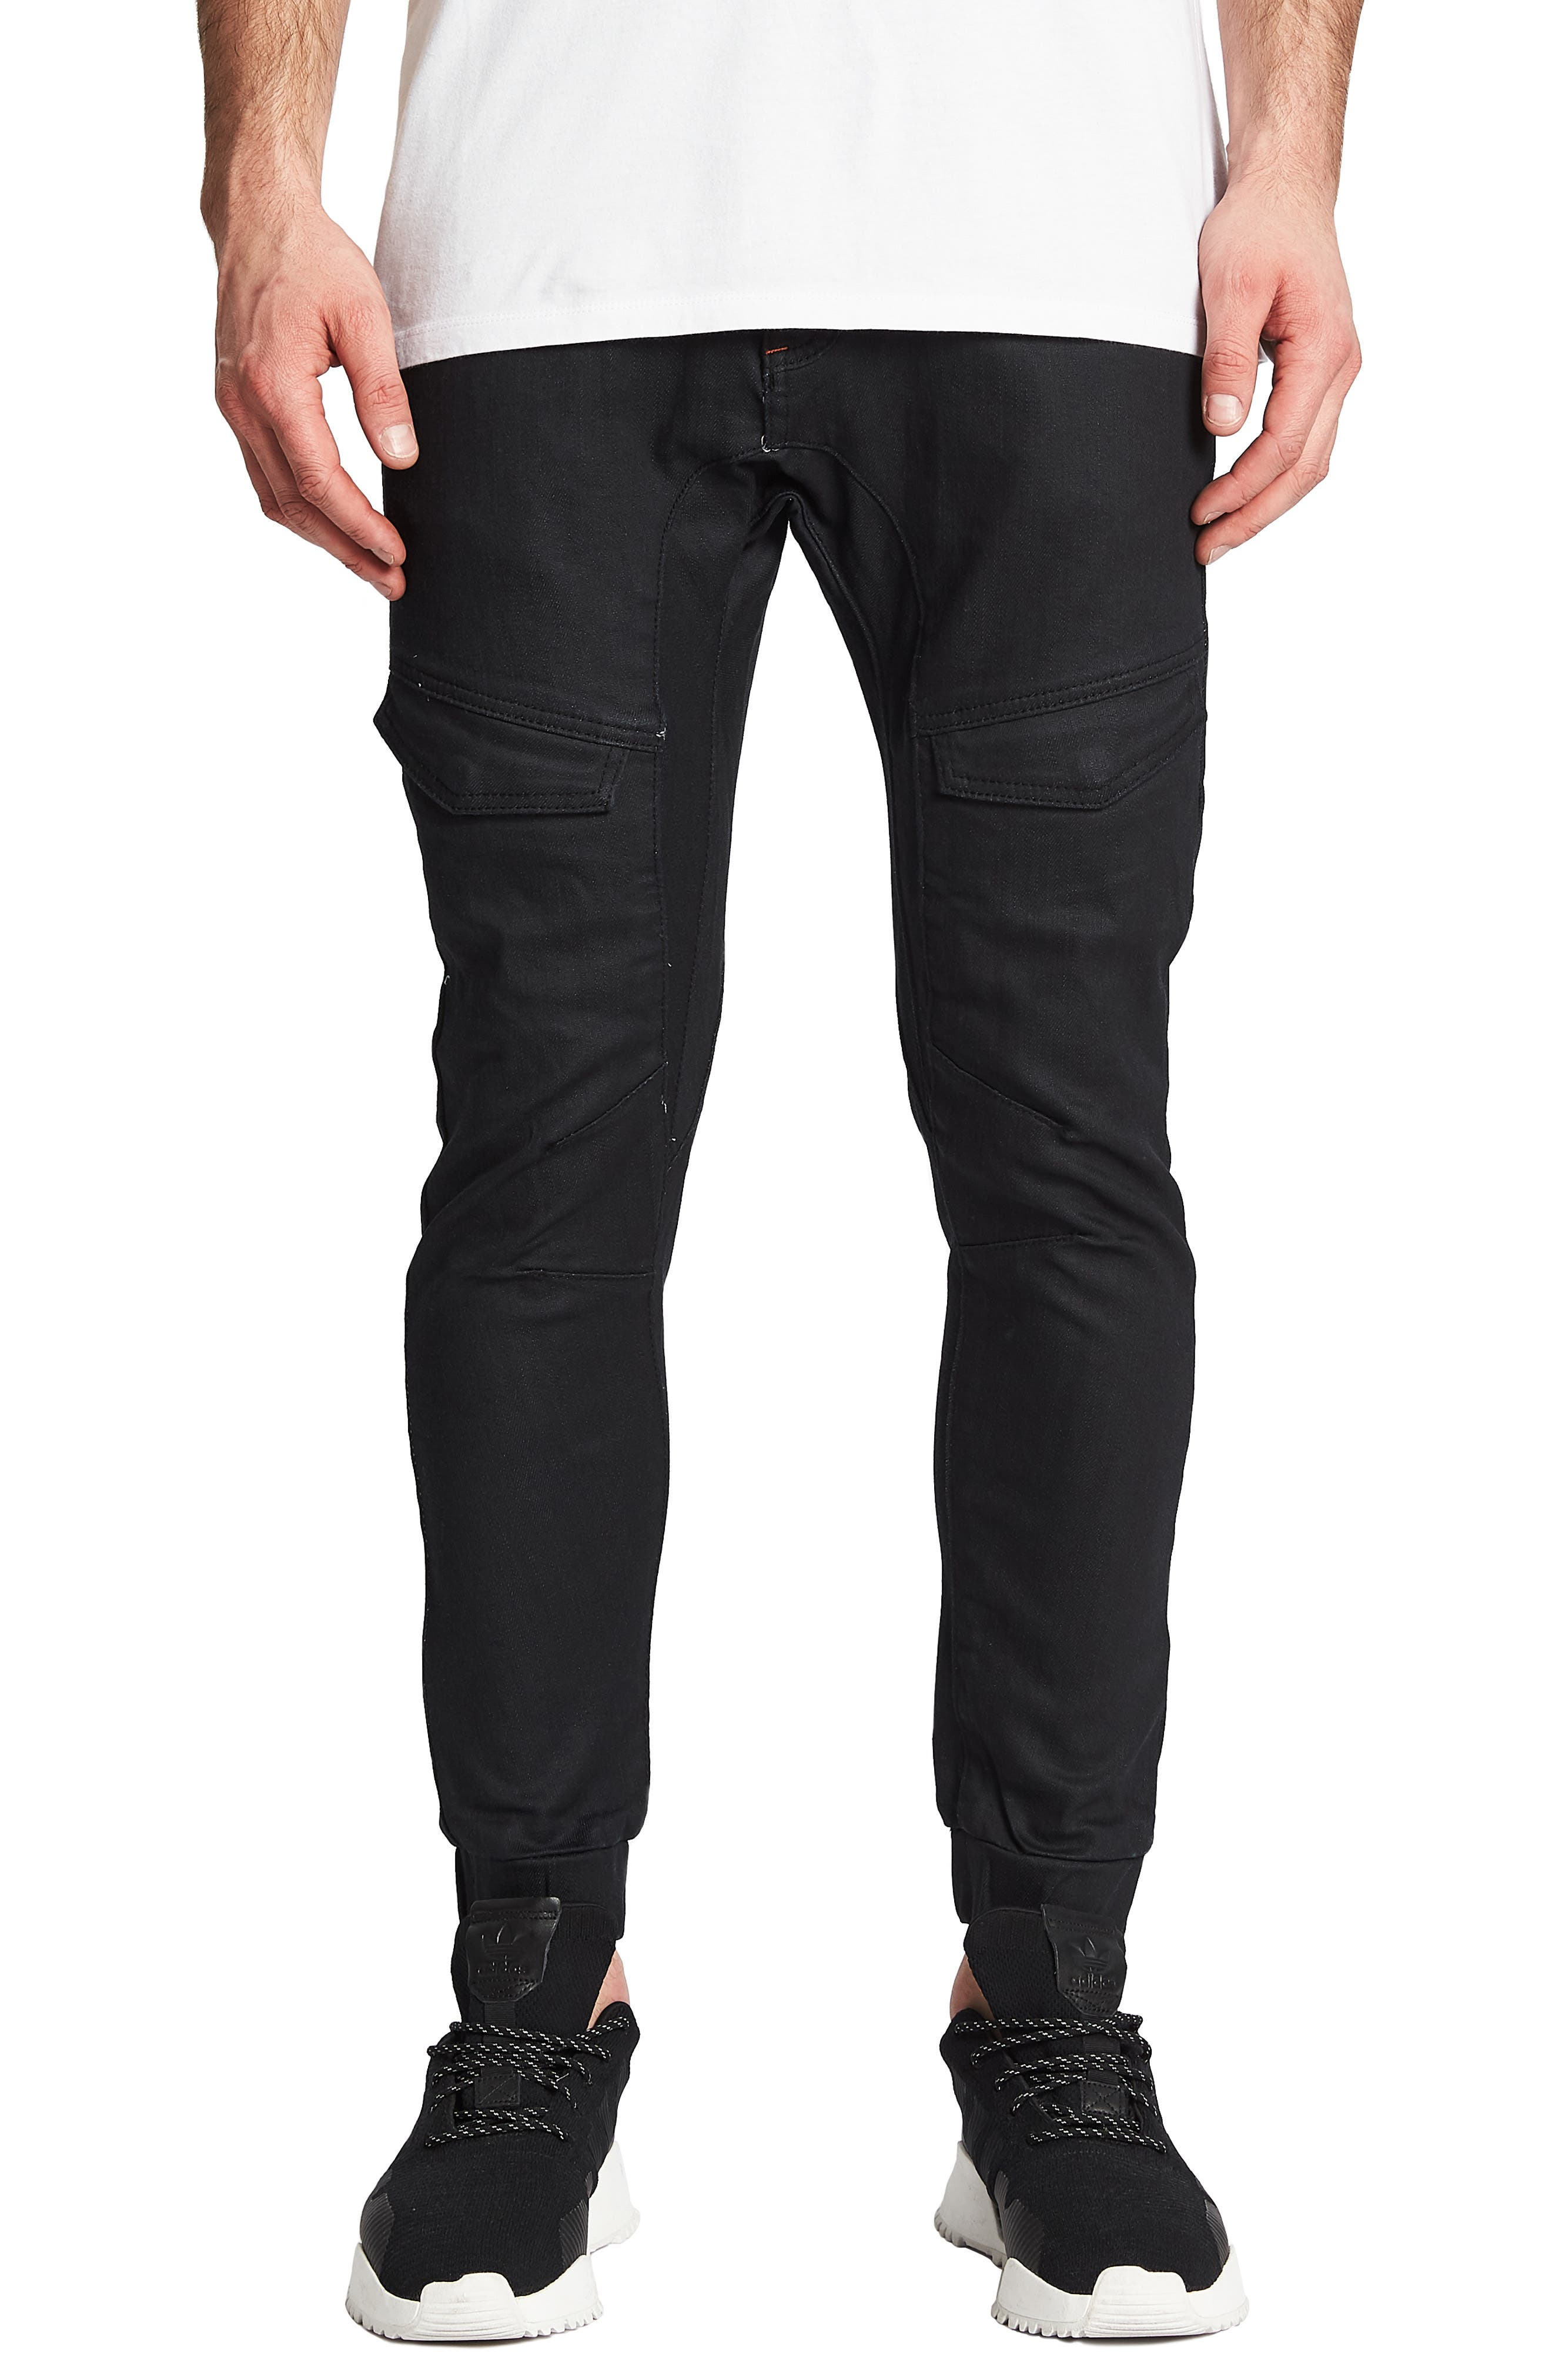 Flight Skinny Denim Jogger Pants,                             Main thumbnail 2, color,